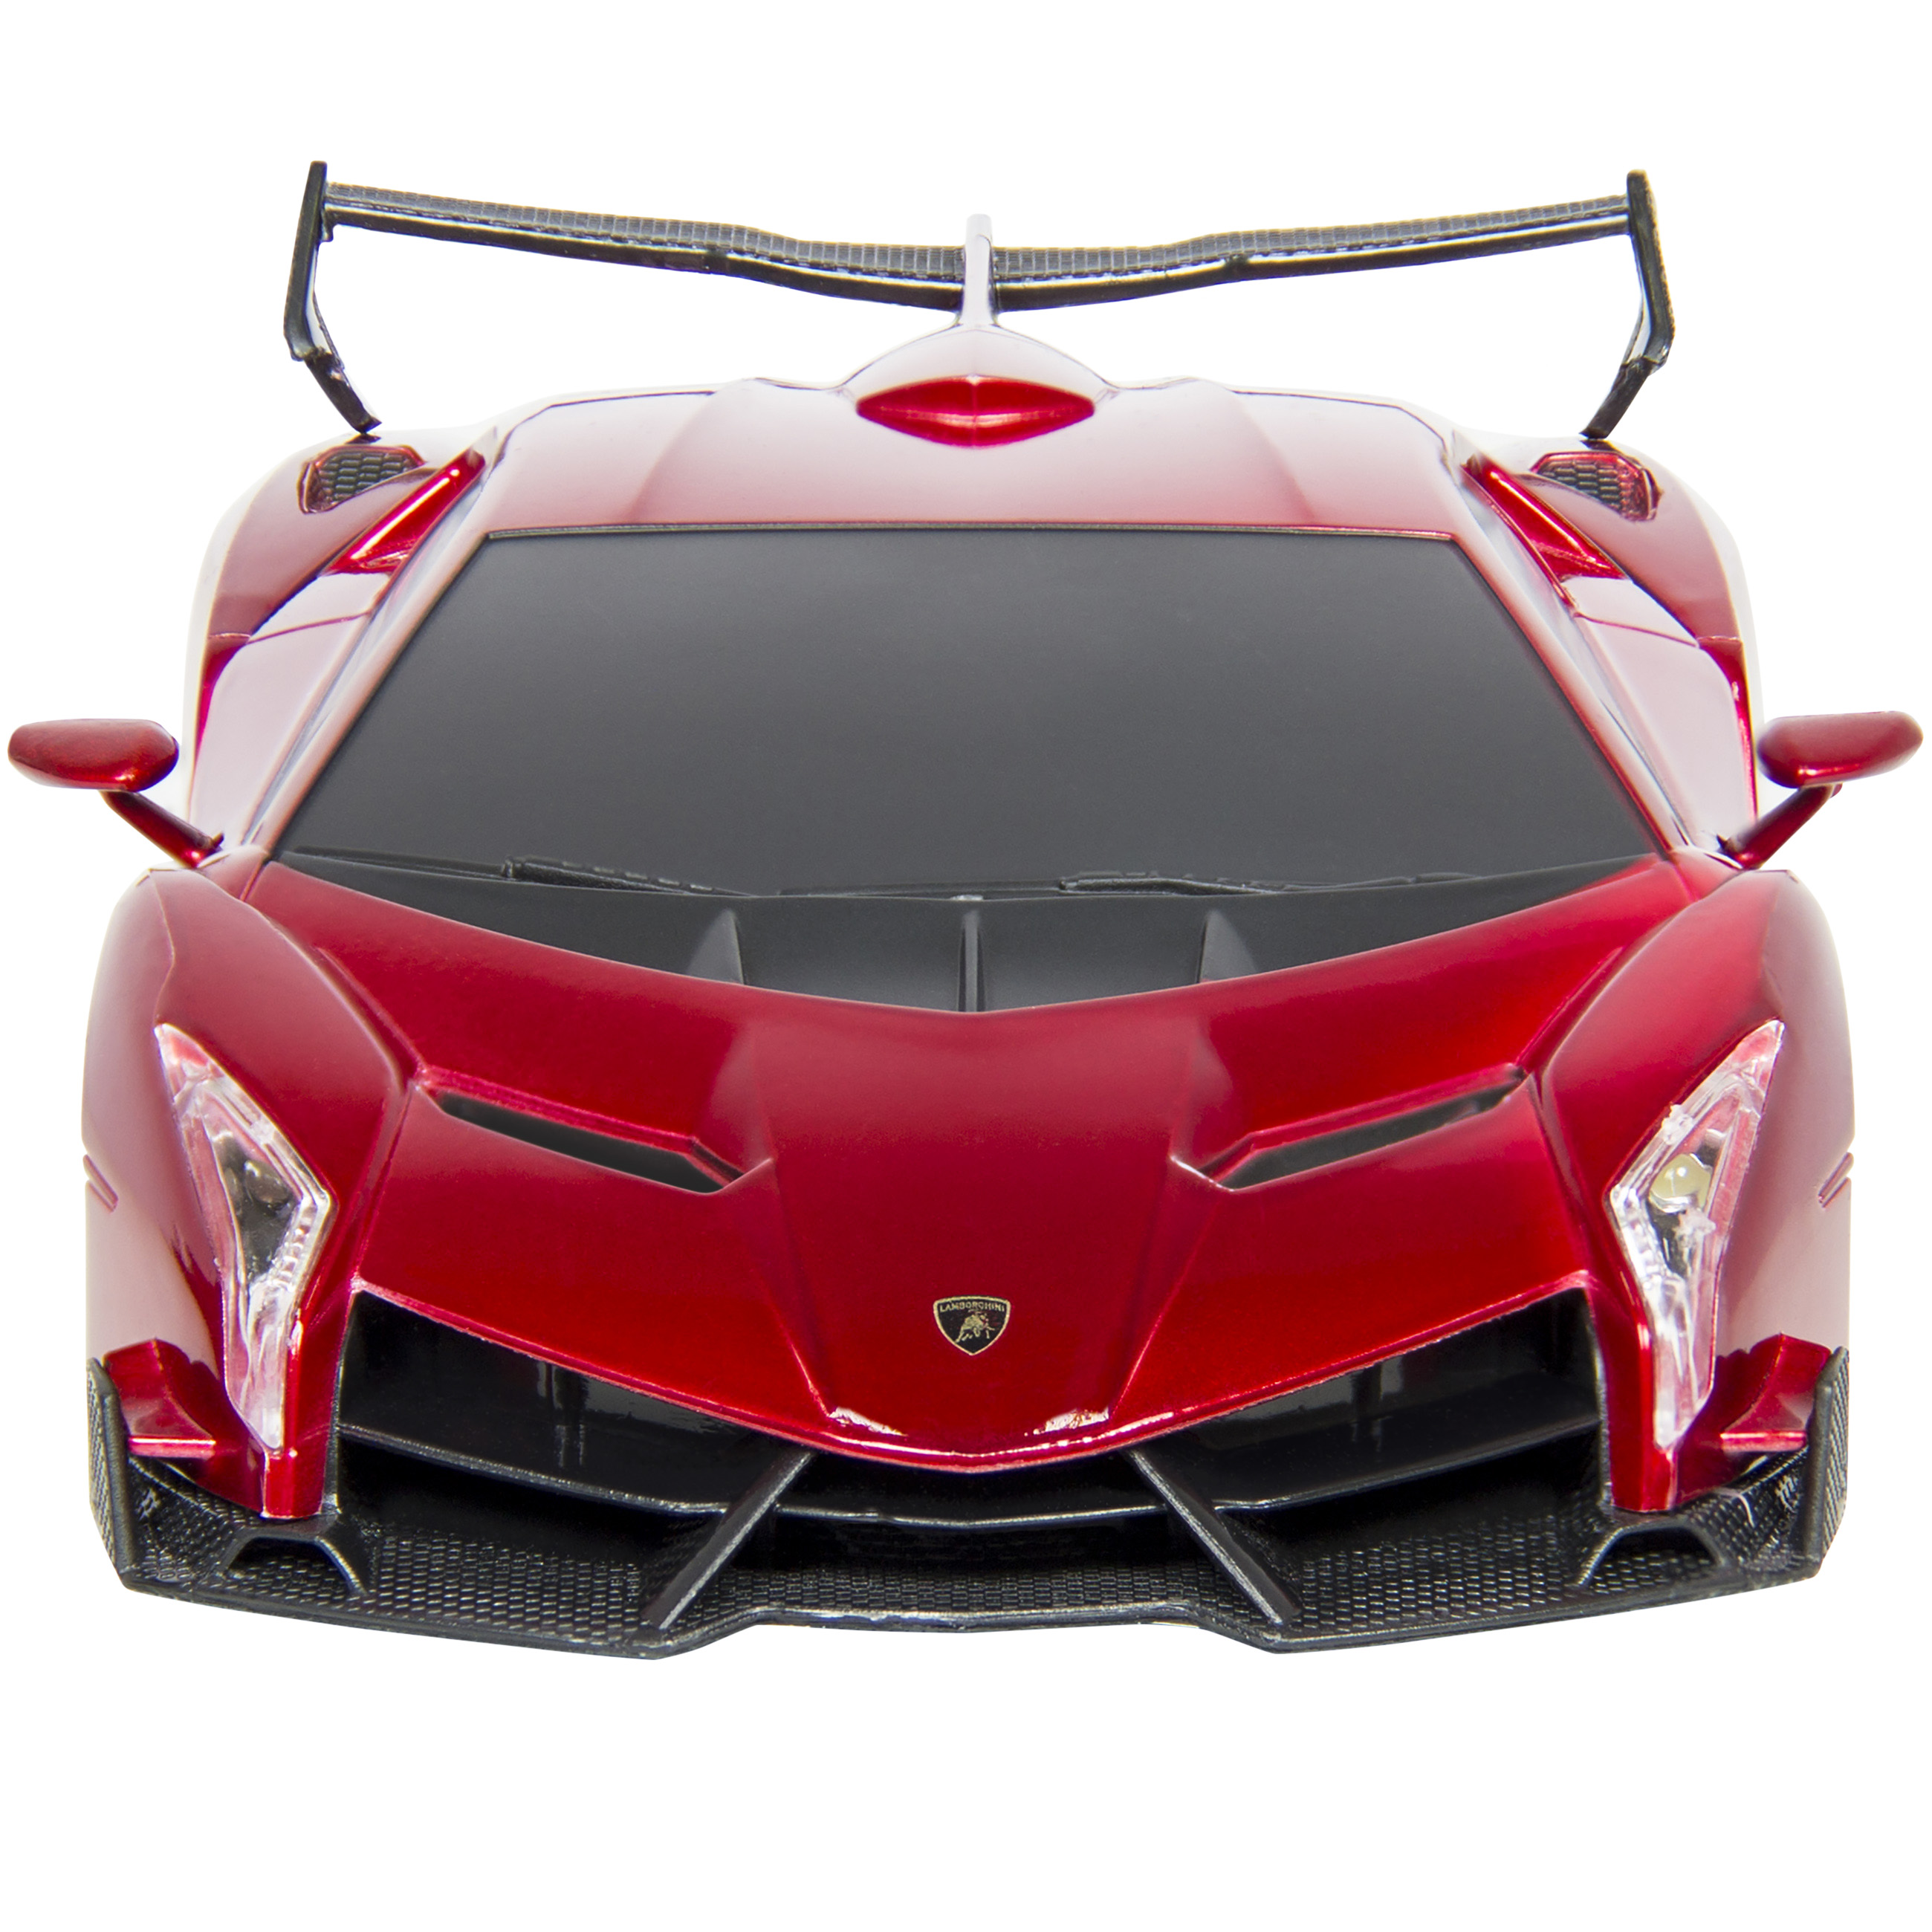 Best Choice Products 124 Officially Licensed RC Lamborghini